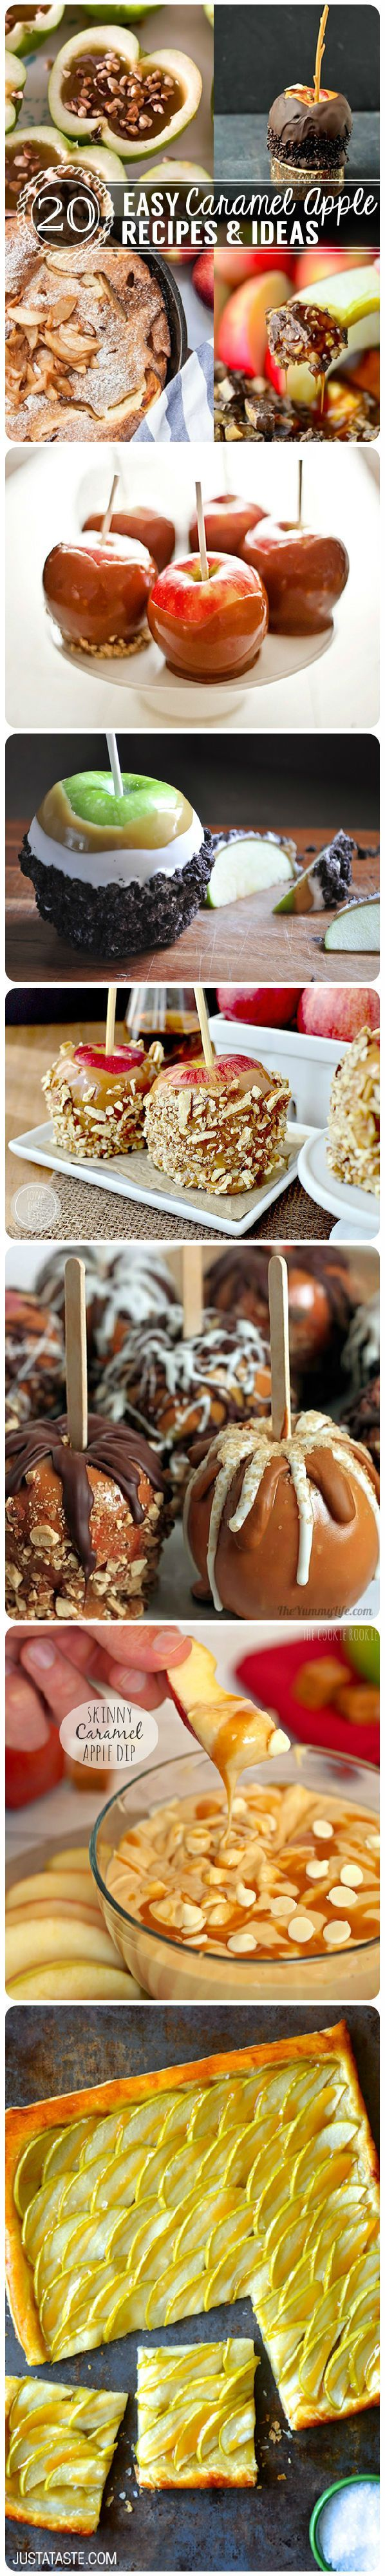 20 Easy Caramel Apple Recipes | Best Desserts and Recipes for Sweets | Pioneer Settler | Best Sweets and Treats Recipes and Ideas at pioneersettler.com| #pioneersettler | #homesteading | #selfreliance